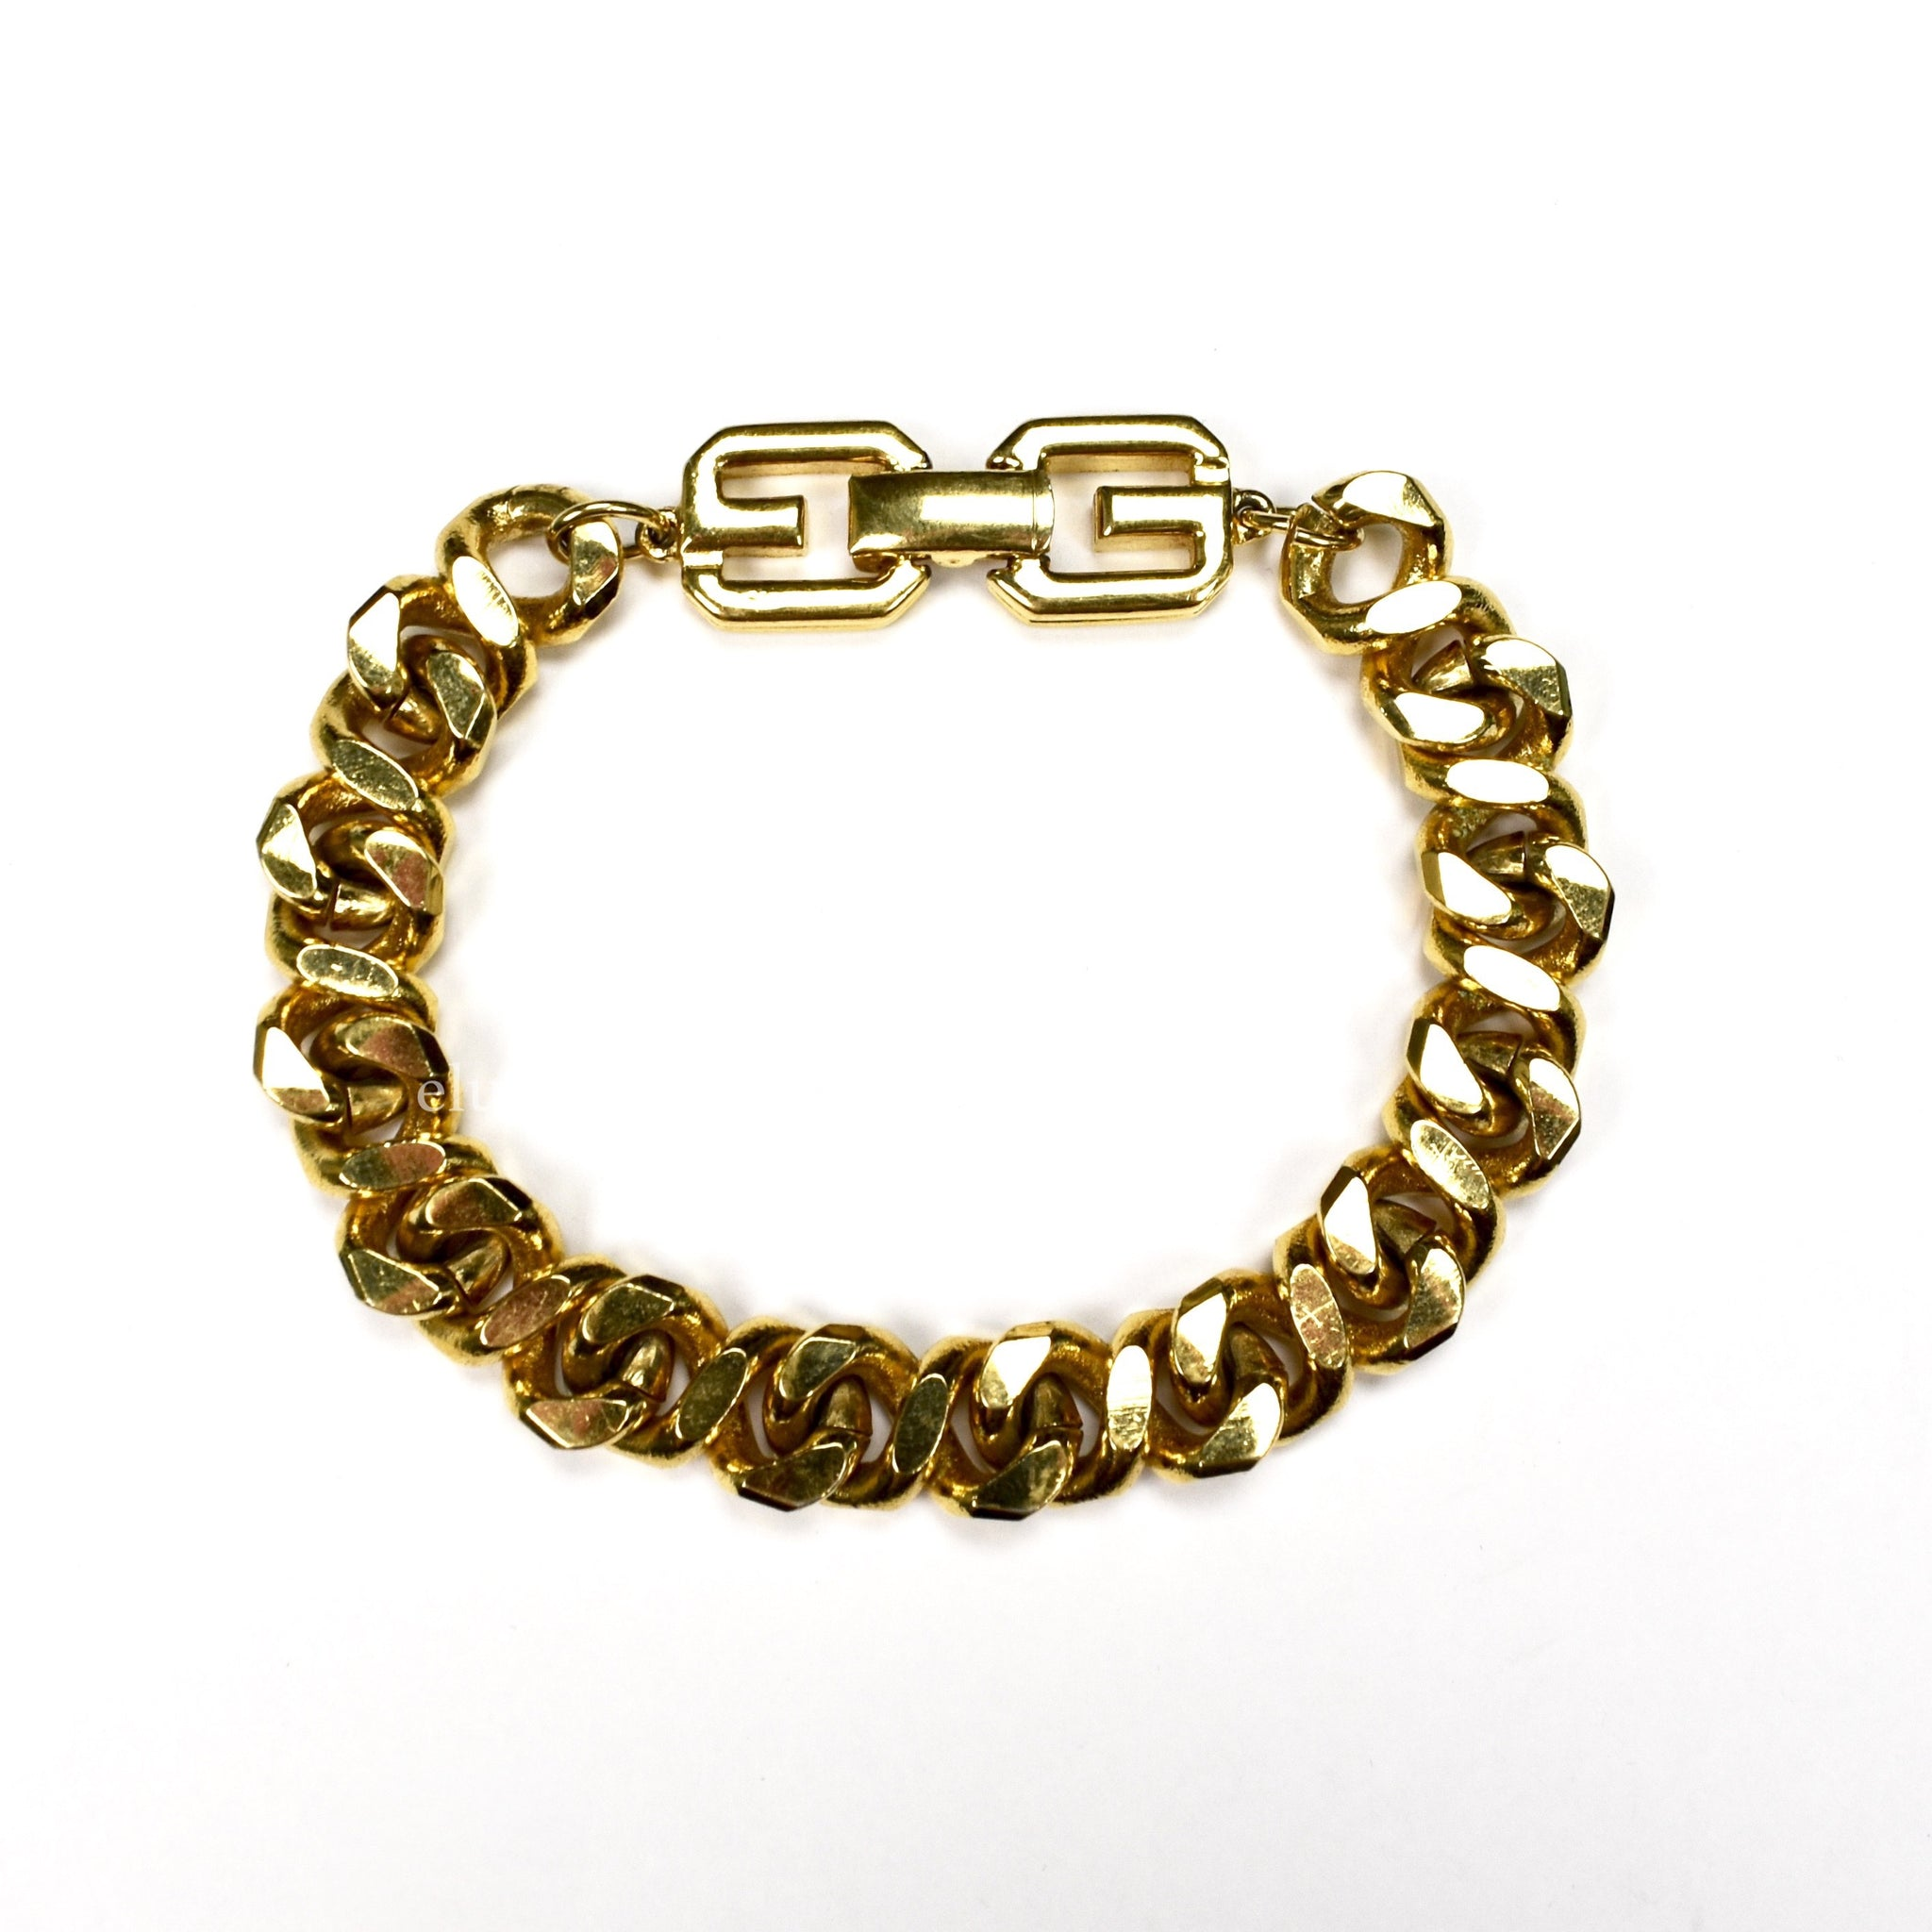 Givenchy - Gold Curb Link Chain Bracelet